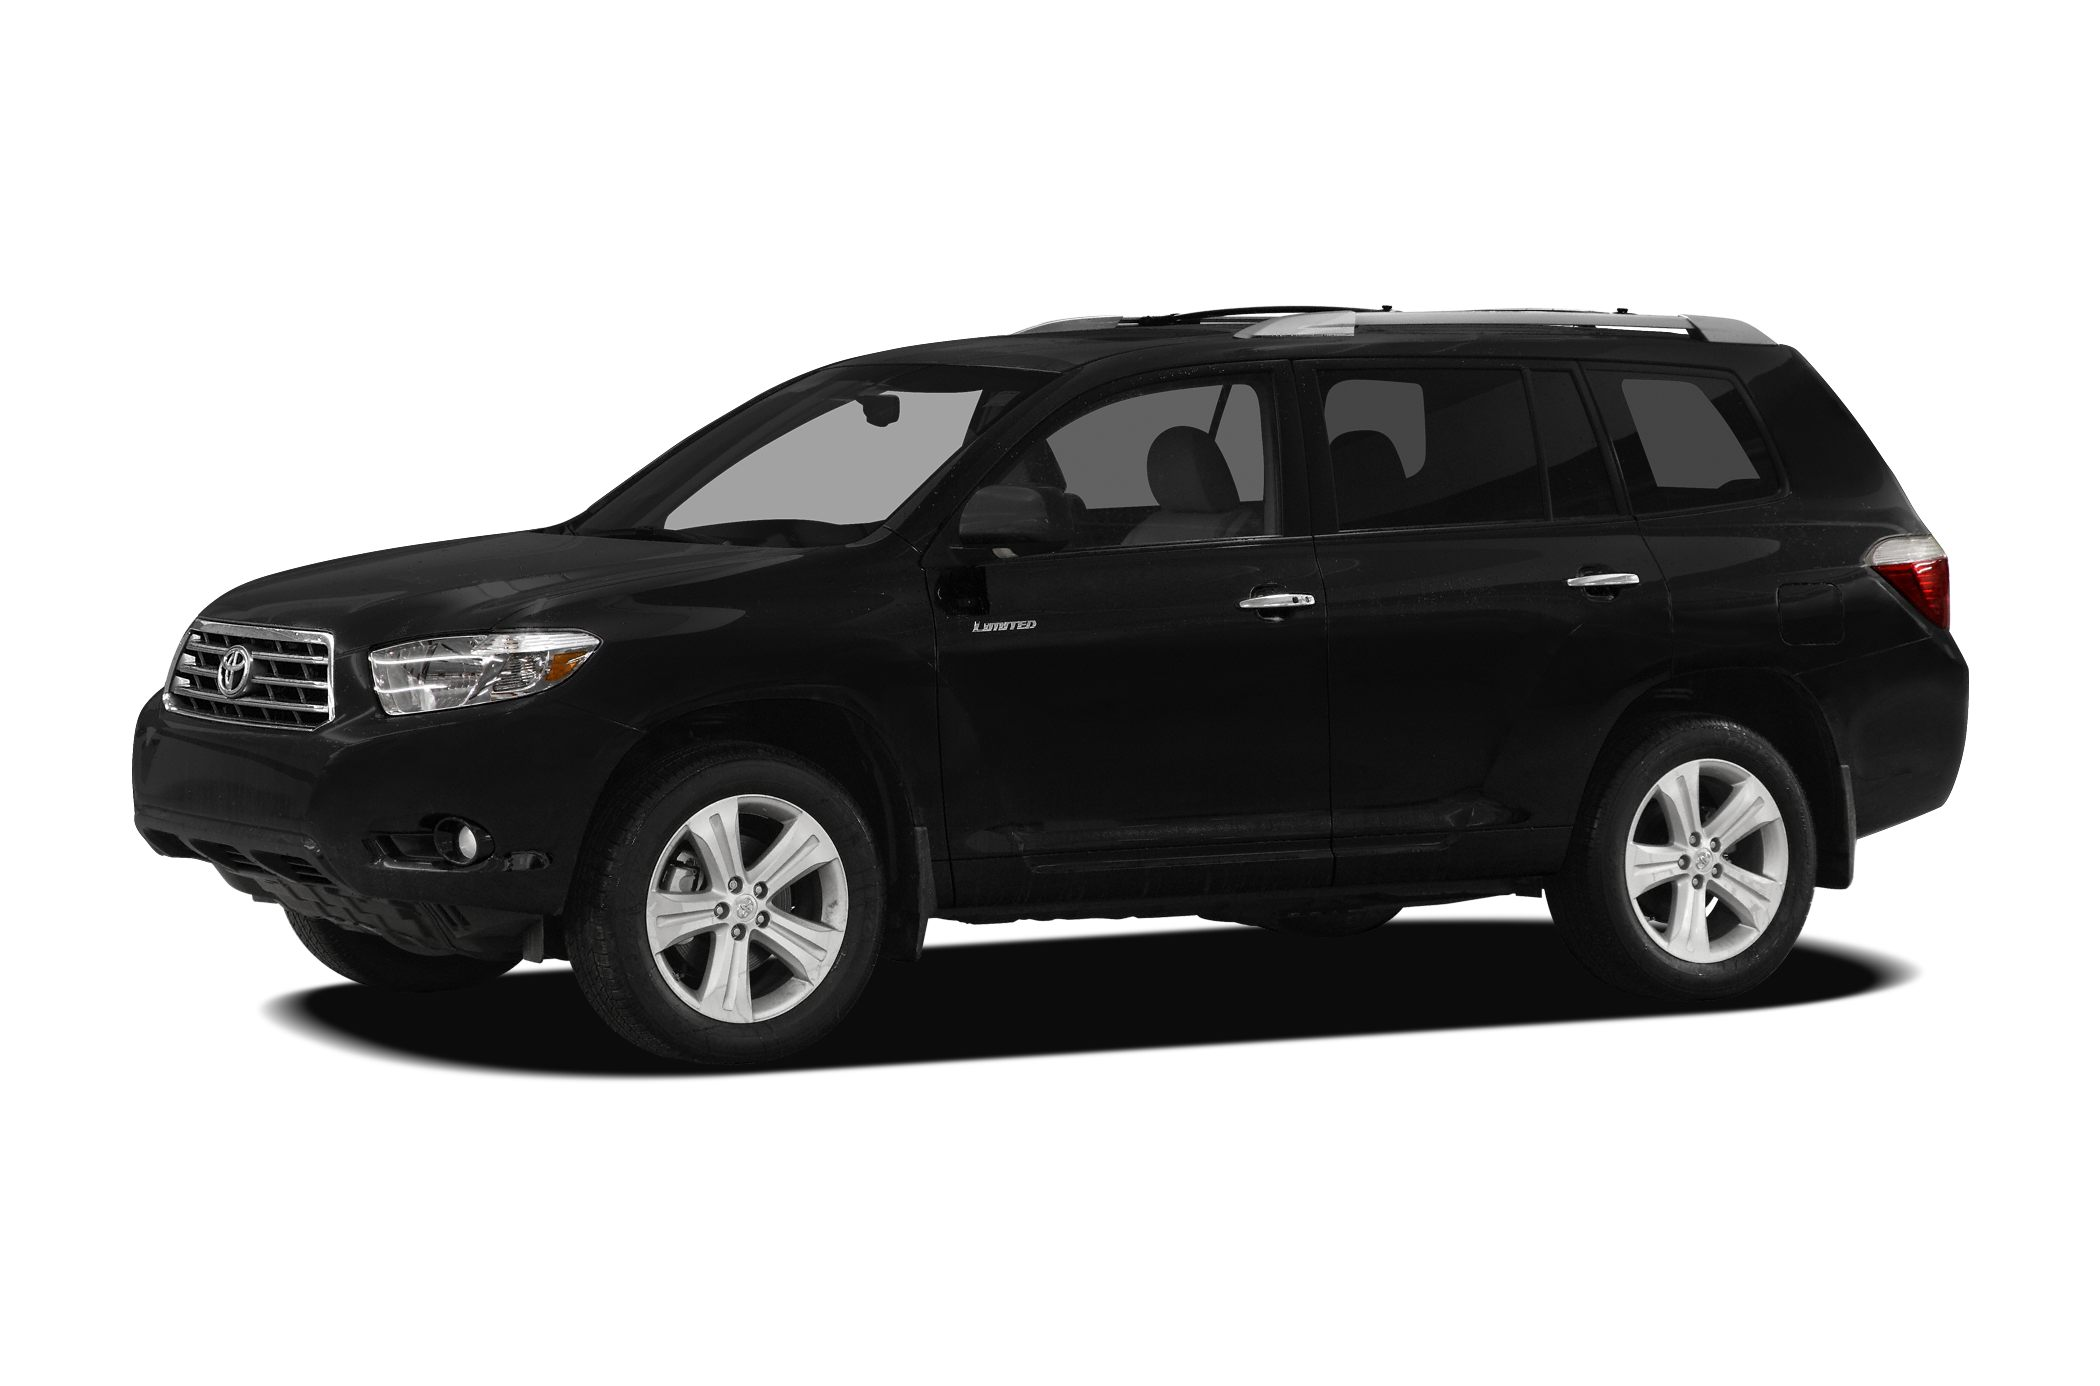 2010 Toyota Highlander Limited  COME SEE THE DIFFERENCE AT TAJ AUTO MALL WE SELL OUR VEHI